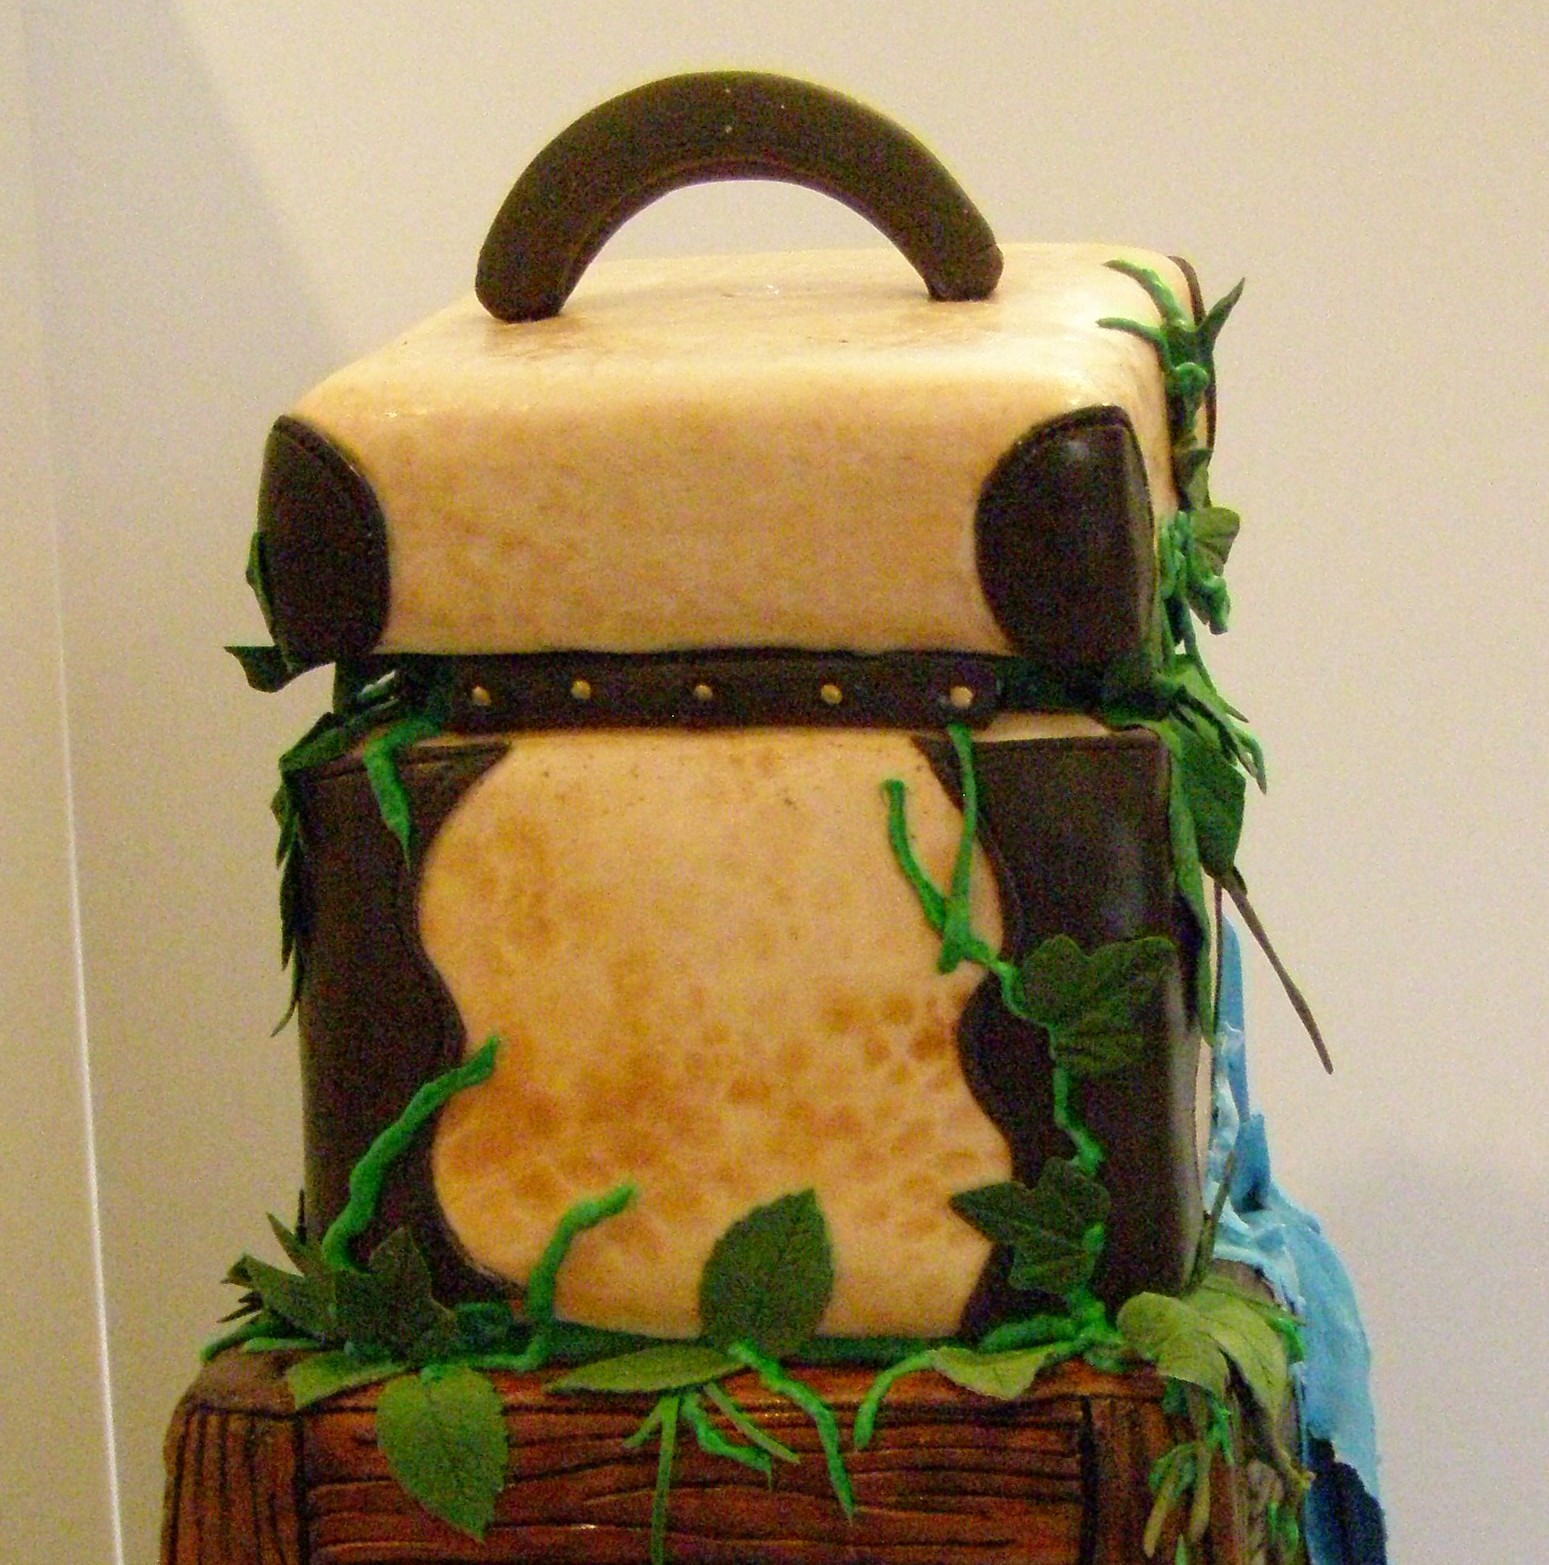 How To Make A Treasure Chest Cake With Open Lid